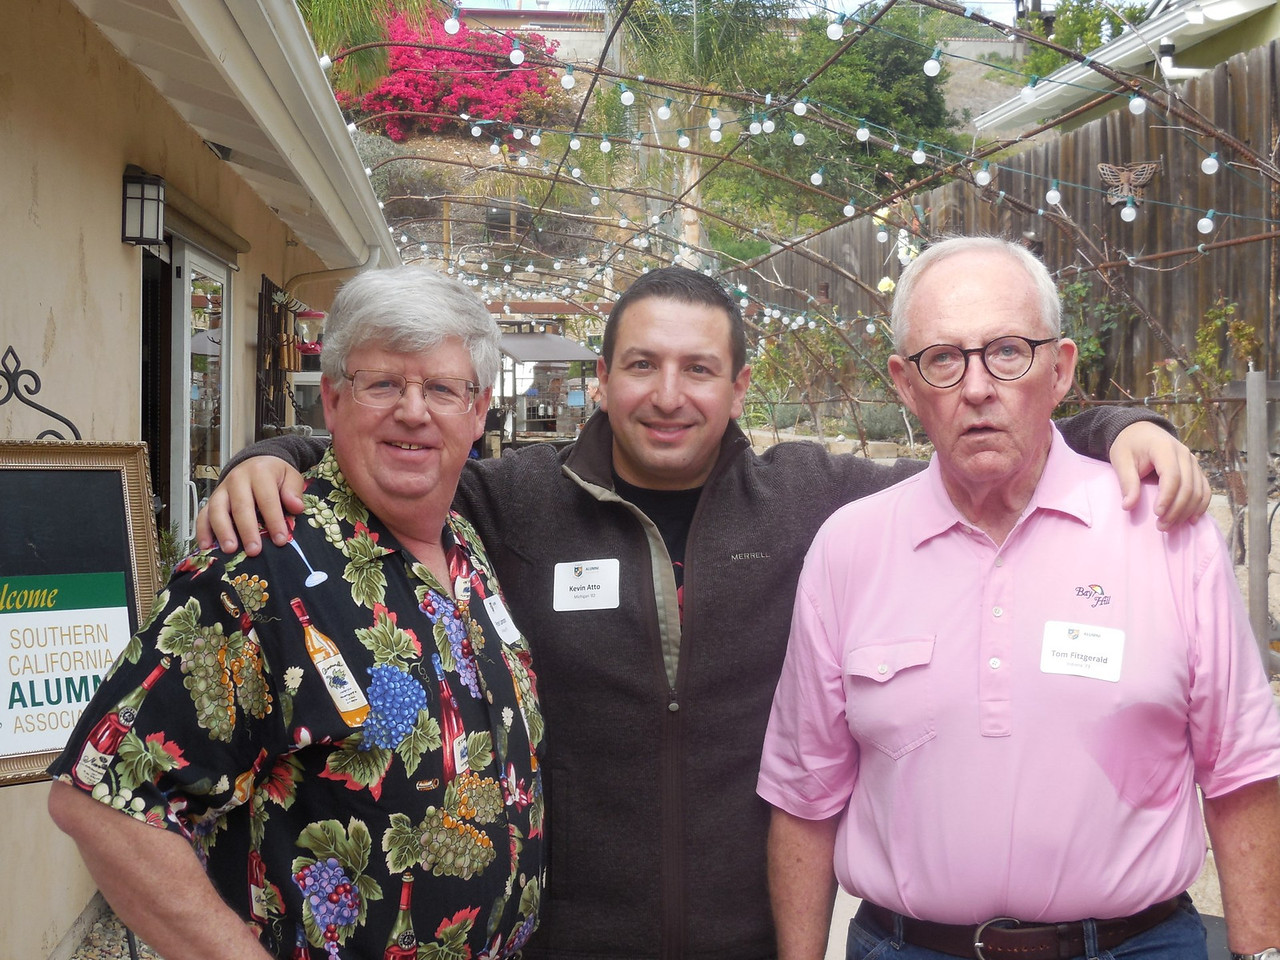 Peter Lannon (Mich. '76),  Kevin Atto (Mich. '02) and Tom Fitzgerald (Ind. '73)